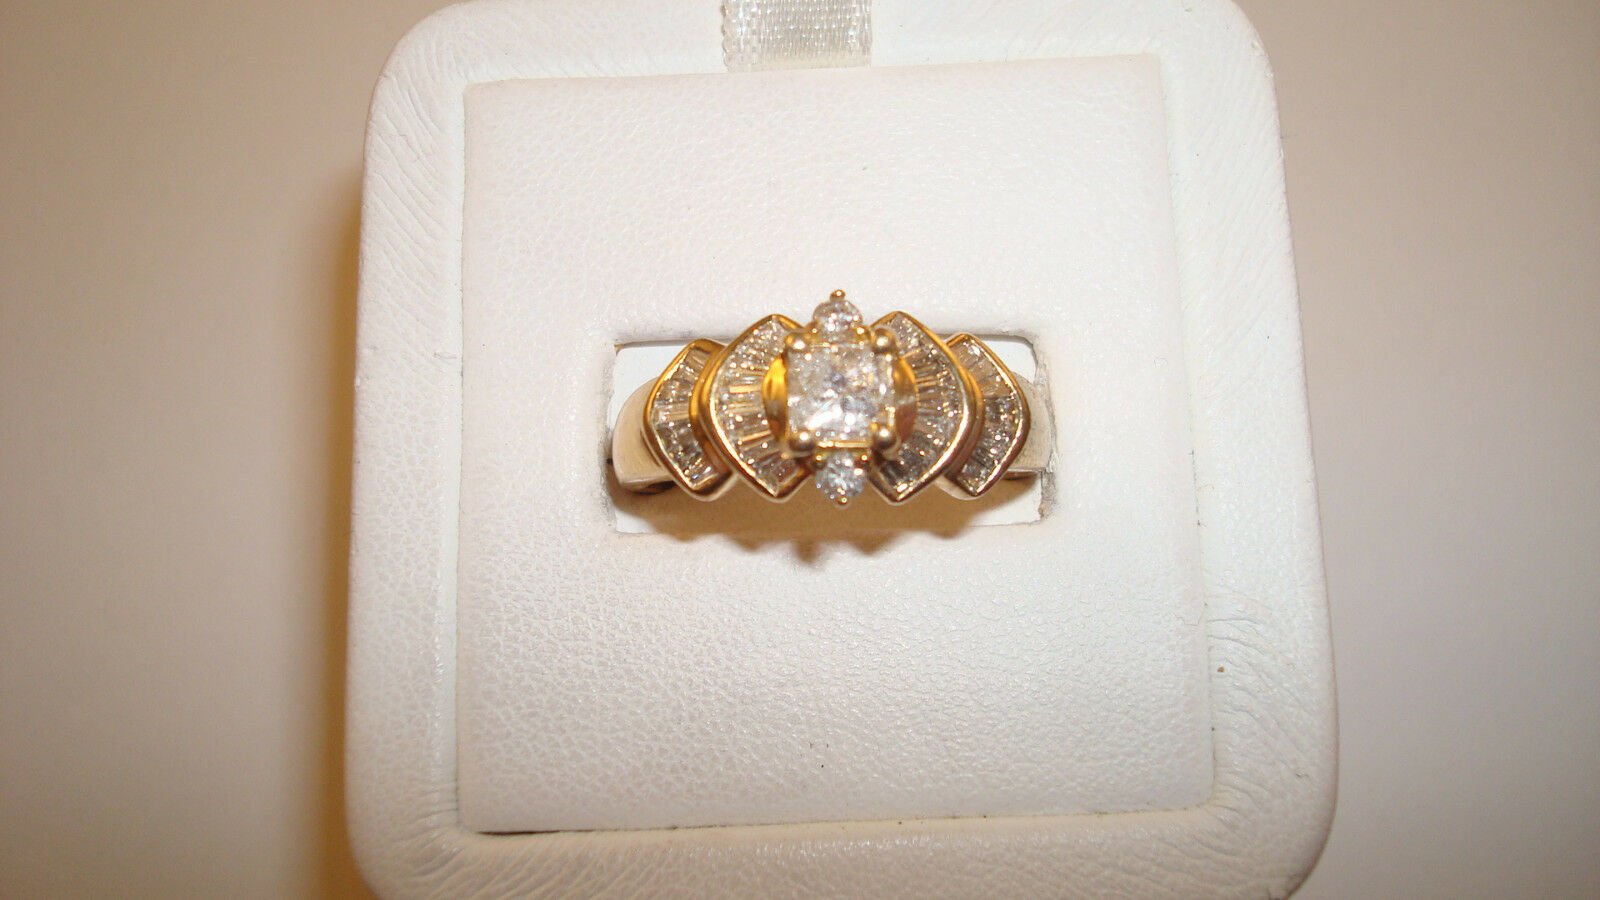 14K yg Diamond Ring - 5.6 Grams - Sz. 9 - .75ctw. Approx ( Gr7p)